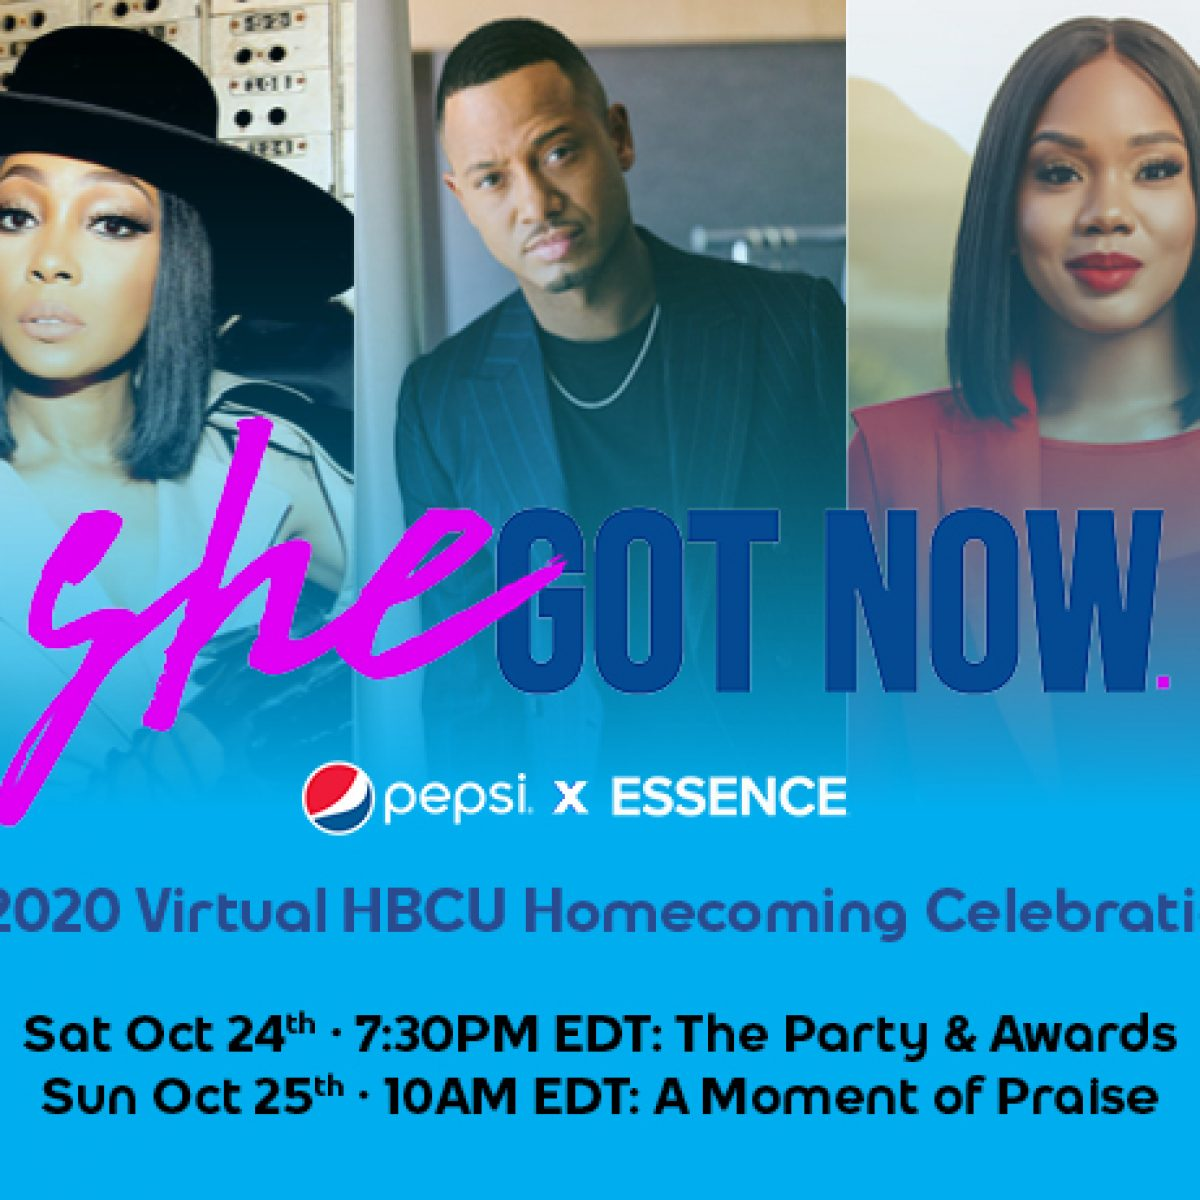 ESSENCE Is Teaming Up With Pepsi To Bring You The Ultimate Virtual HBCU Homecoming Season Celebration